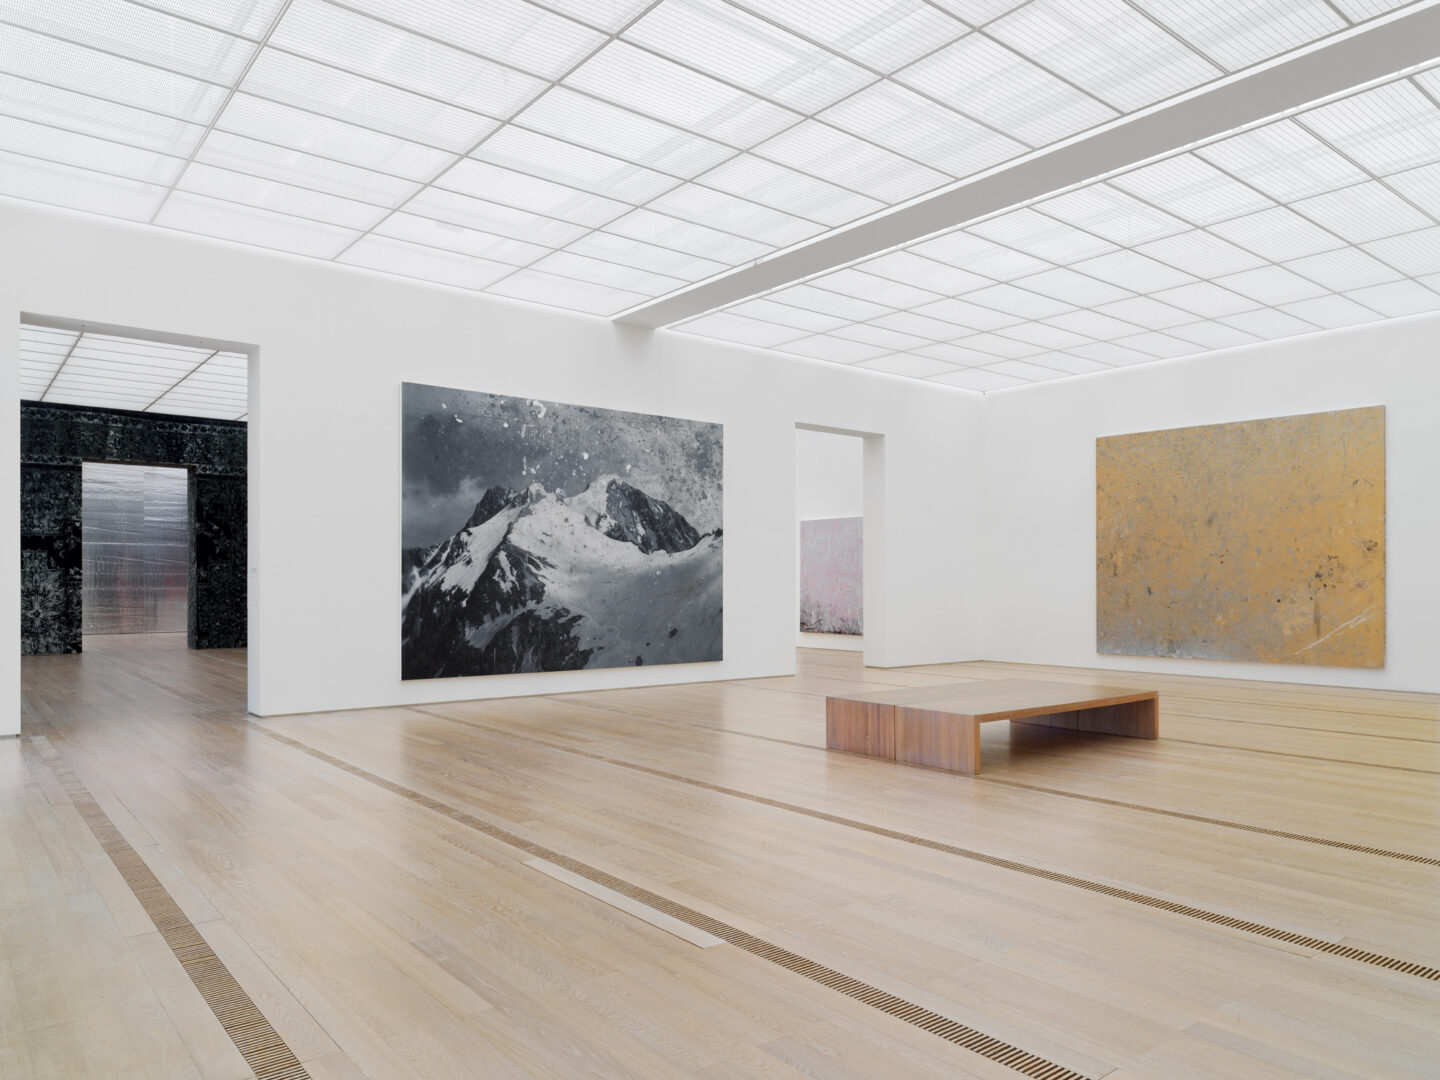 Exhibition View Rudolf Stingel Soloshow at Fondation Beyeler, Riehen, 2019 / © Rudolf Stingel / Courtesy: the artist and Fondation Beyeler